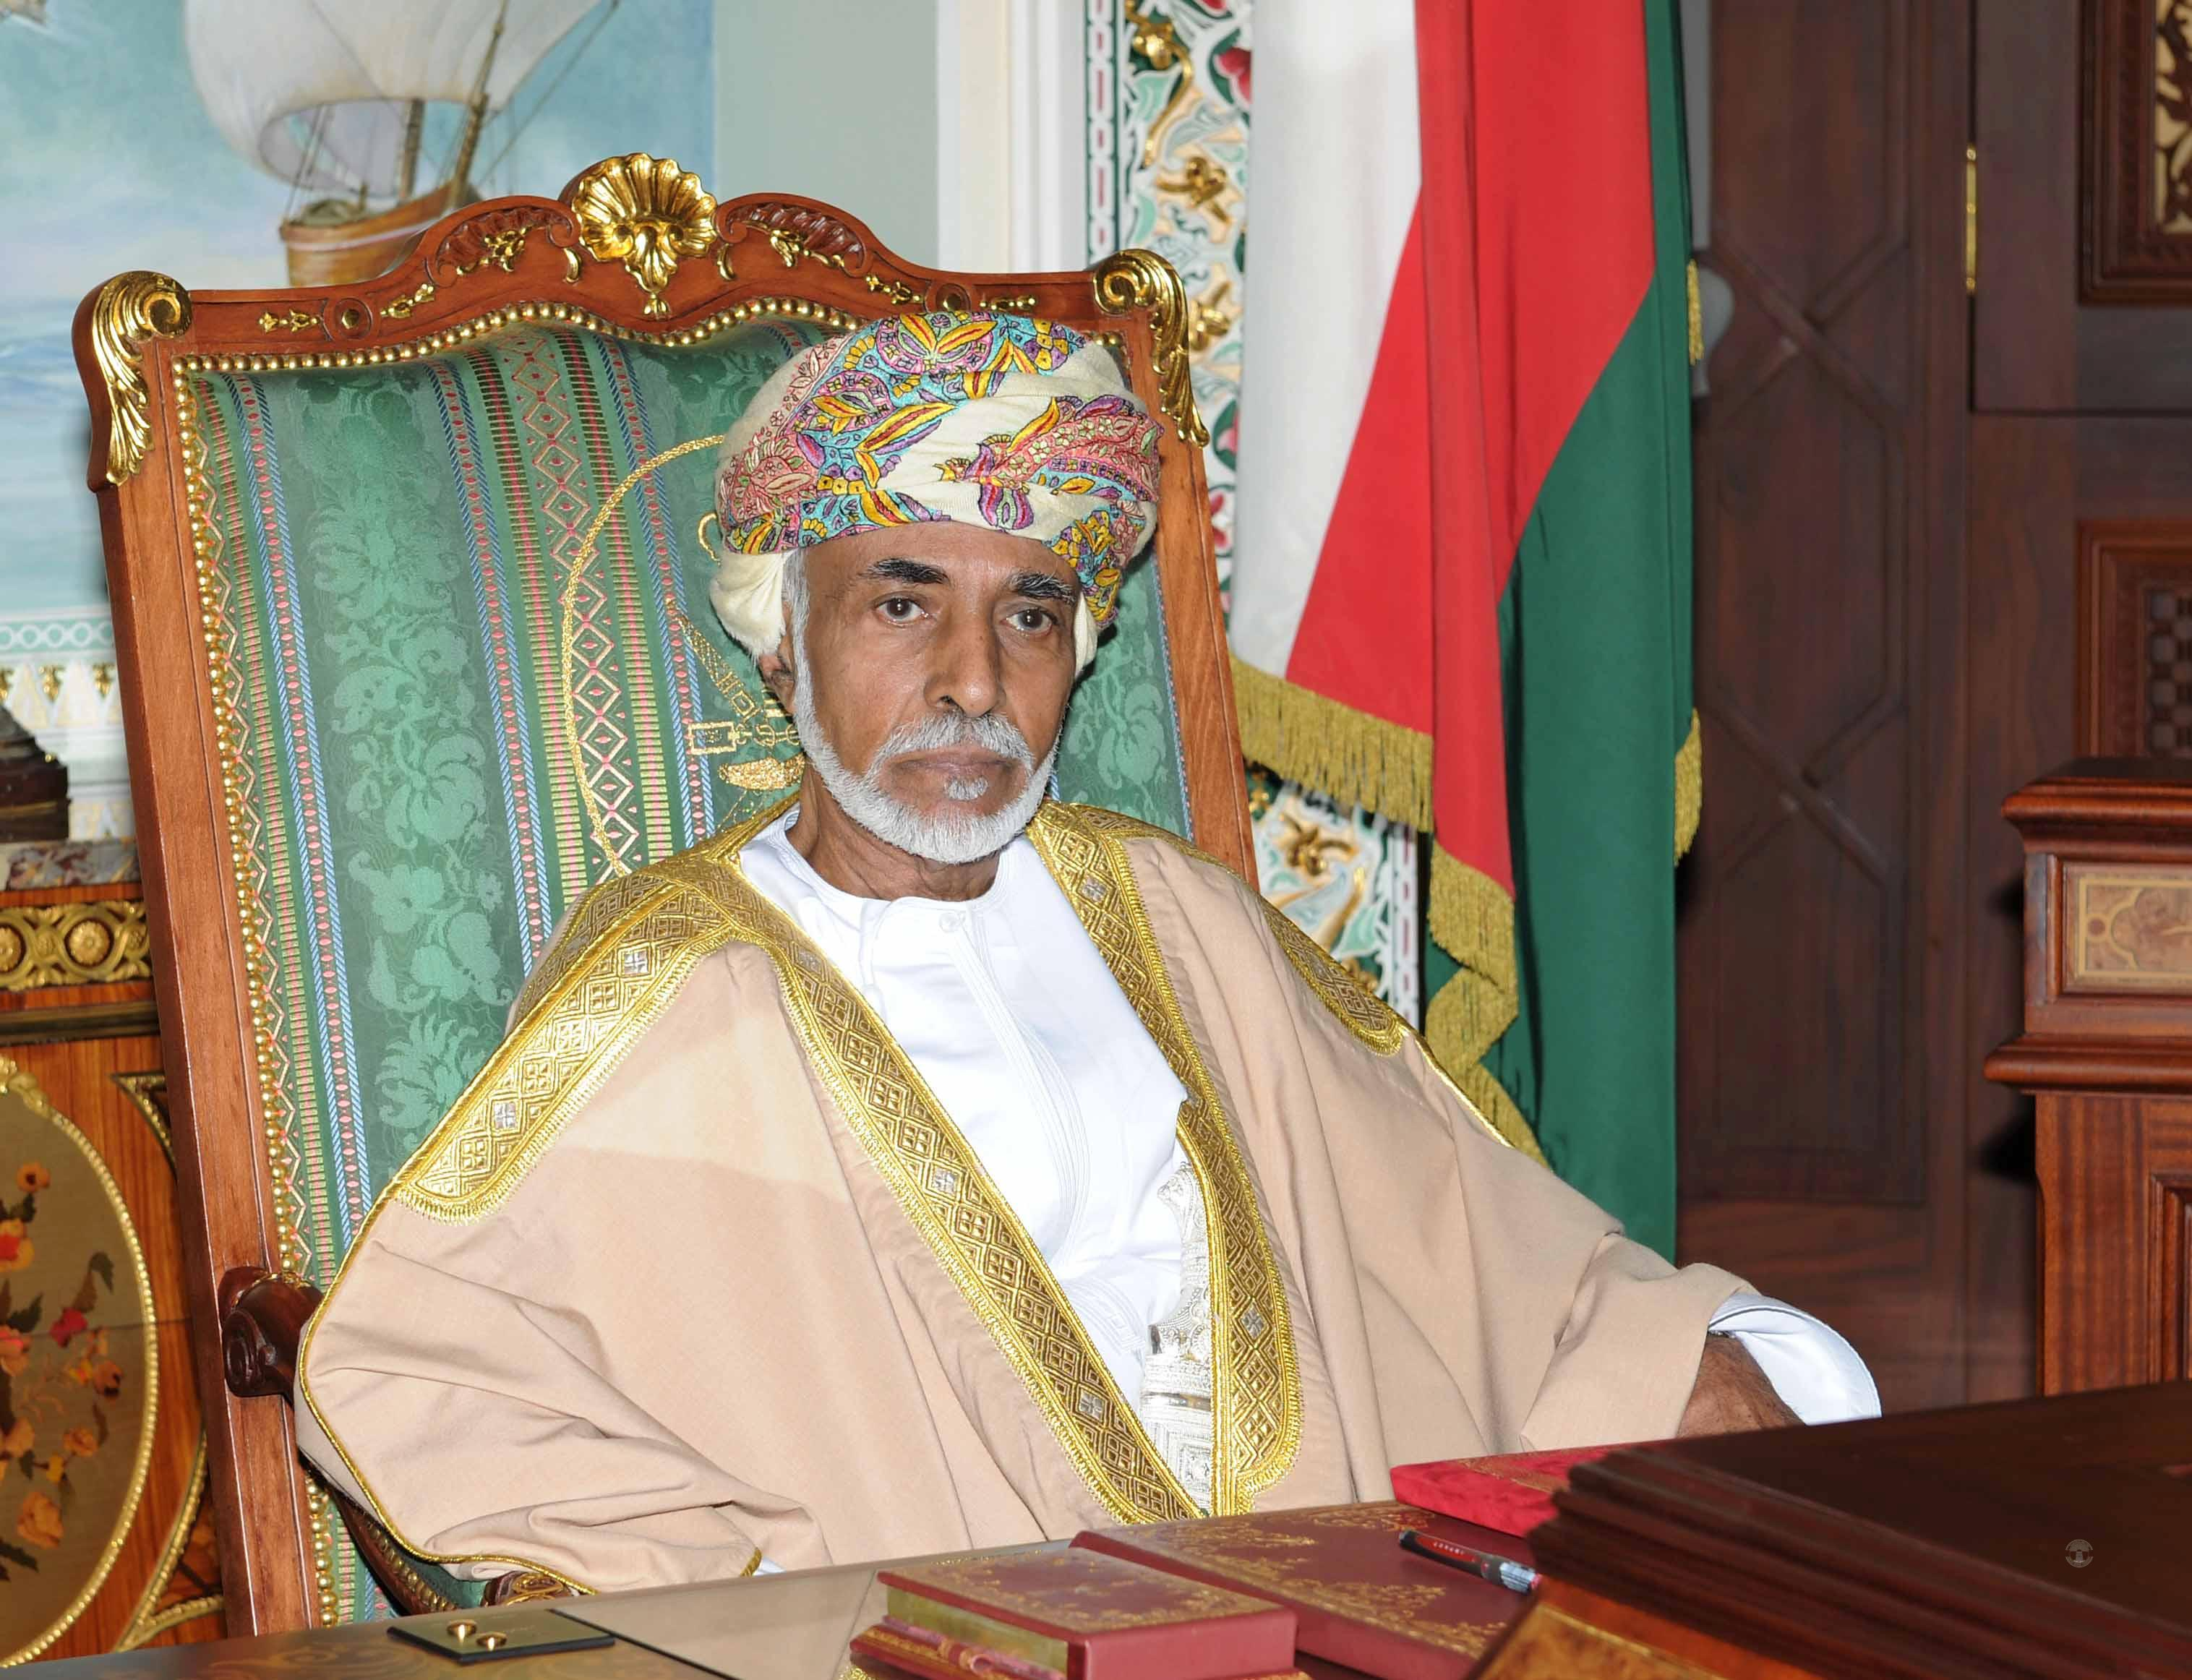 His Majesty Sultan Qaboos sends greetings to India, Australia, receives thanks from Austria